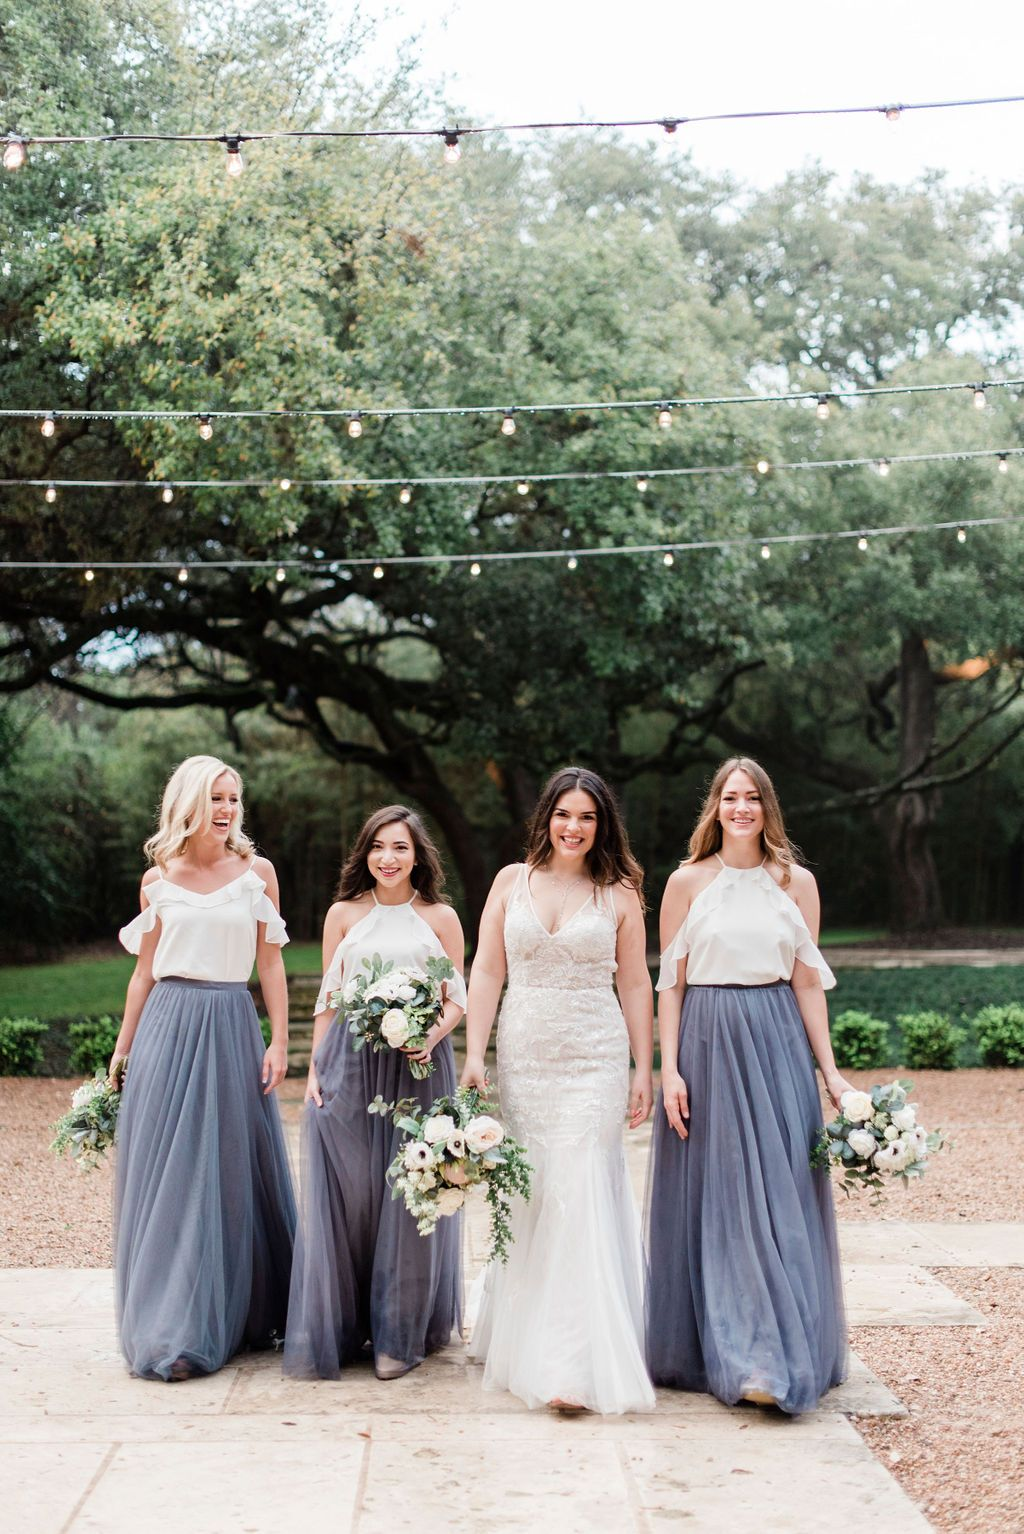 Off The Shoulder Chiffon Bridesmaid Tops Paired With Our Skylar Tulle Skirt In Shades Dusty Blue Go Per Bridesmaid Dresses Boho Bridesmaid Bridesmaid Separates